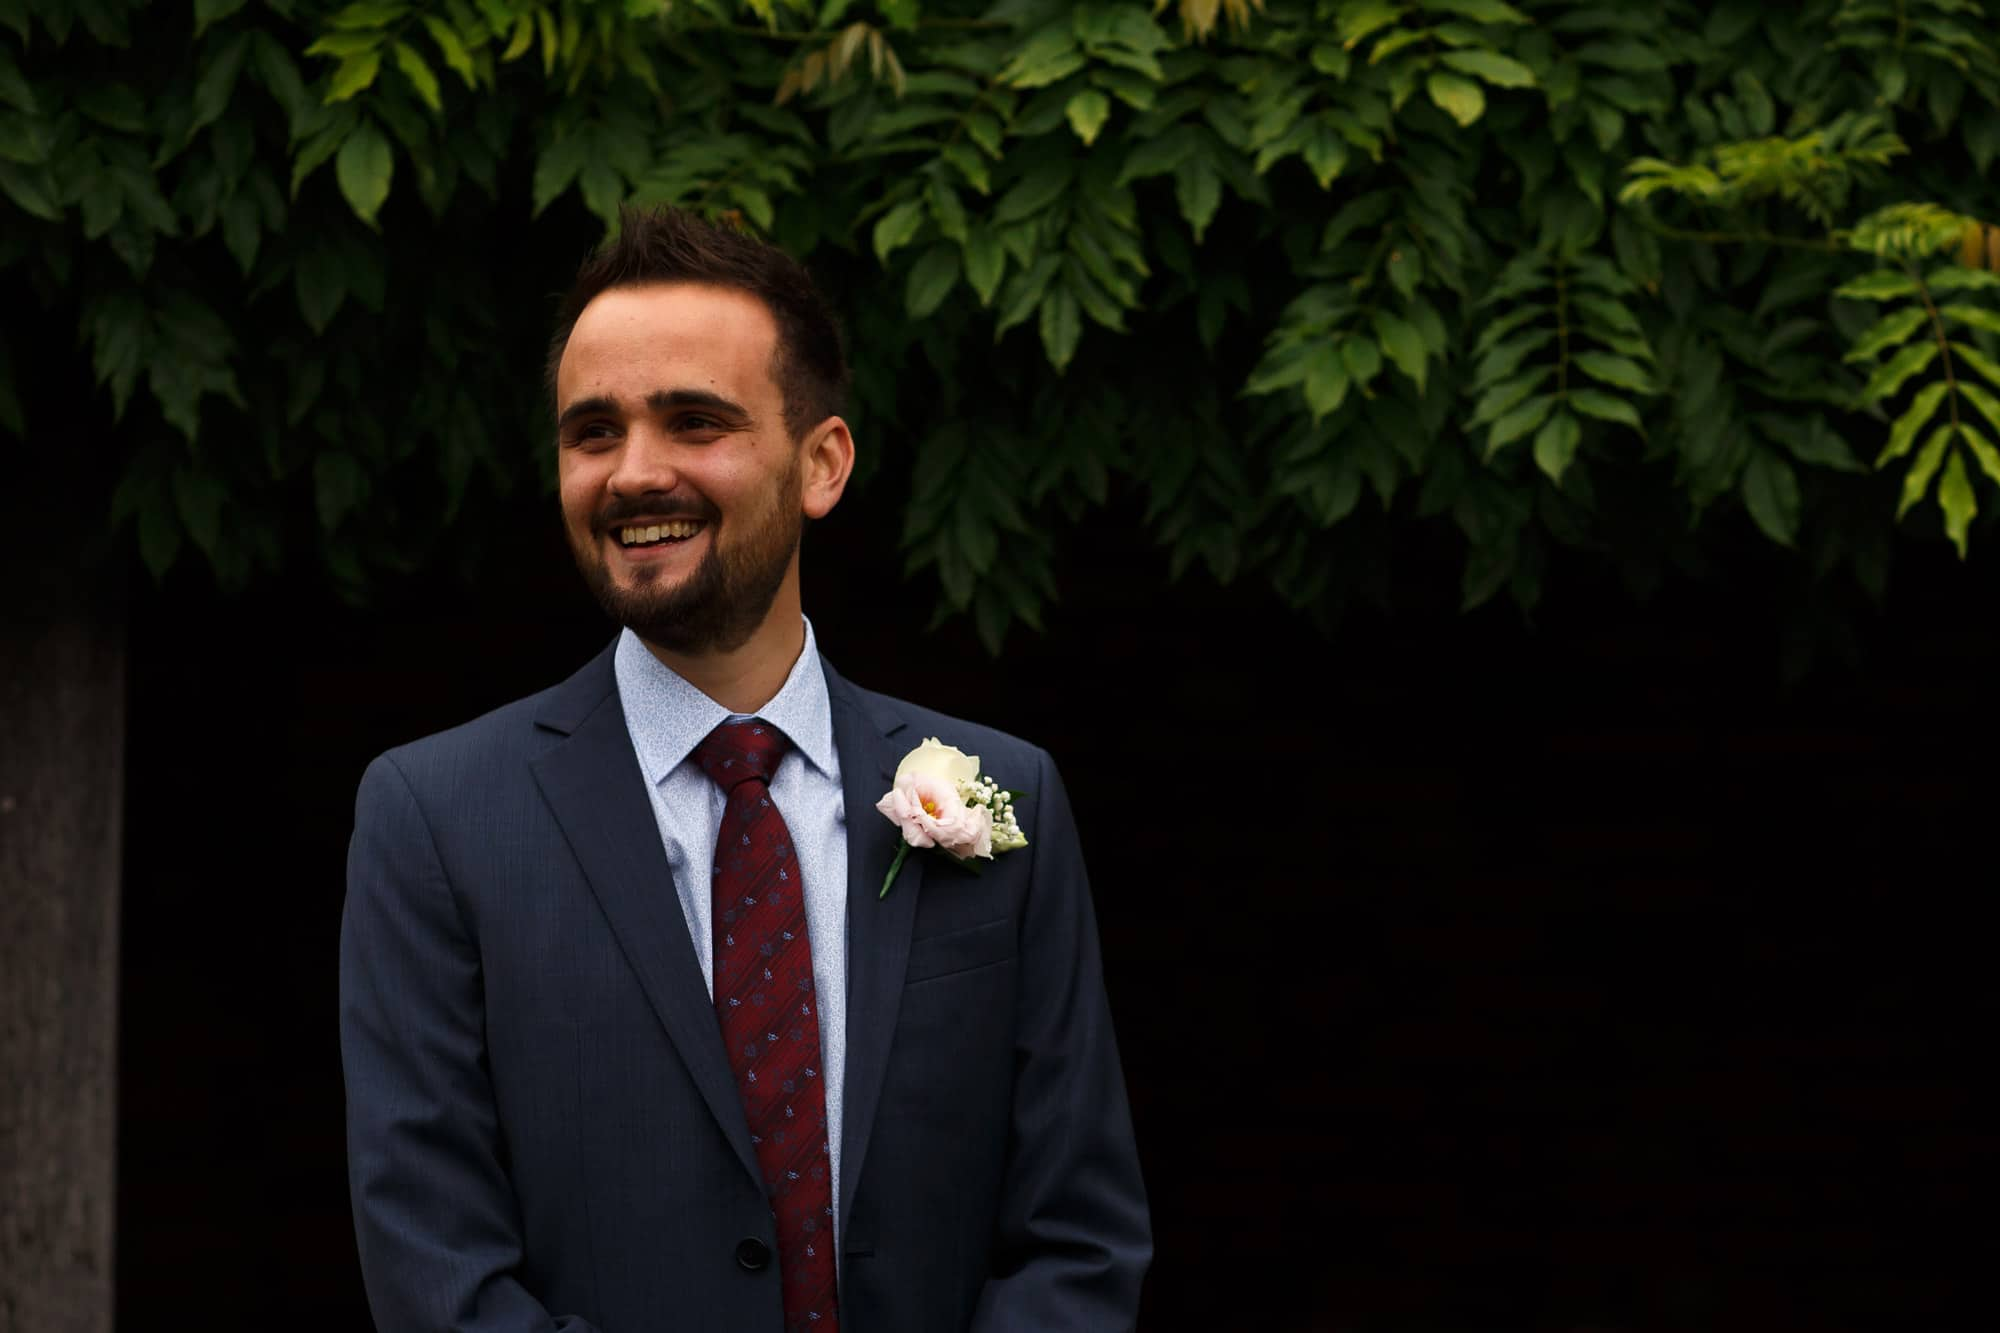 Groom wearing navy suit smiling in reaction to seeing his bride for the first time